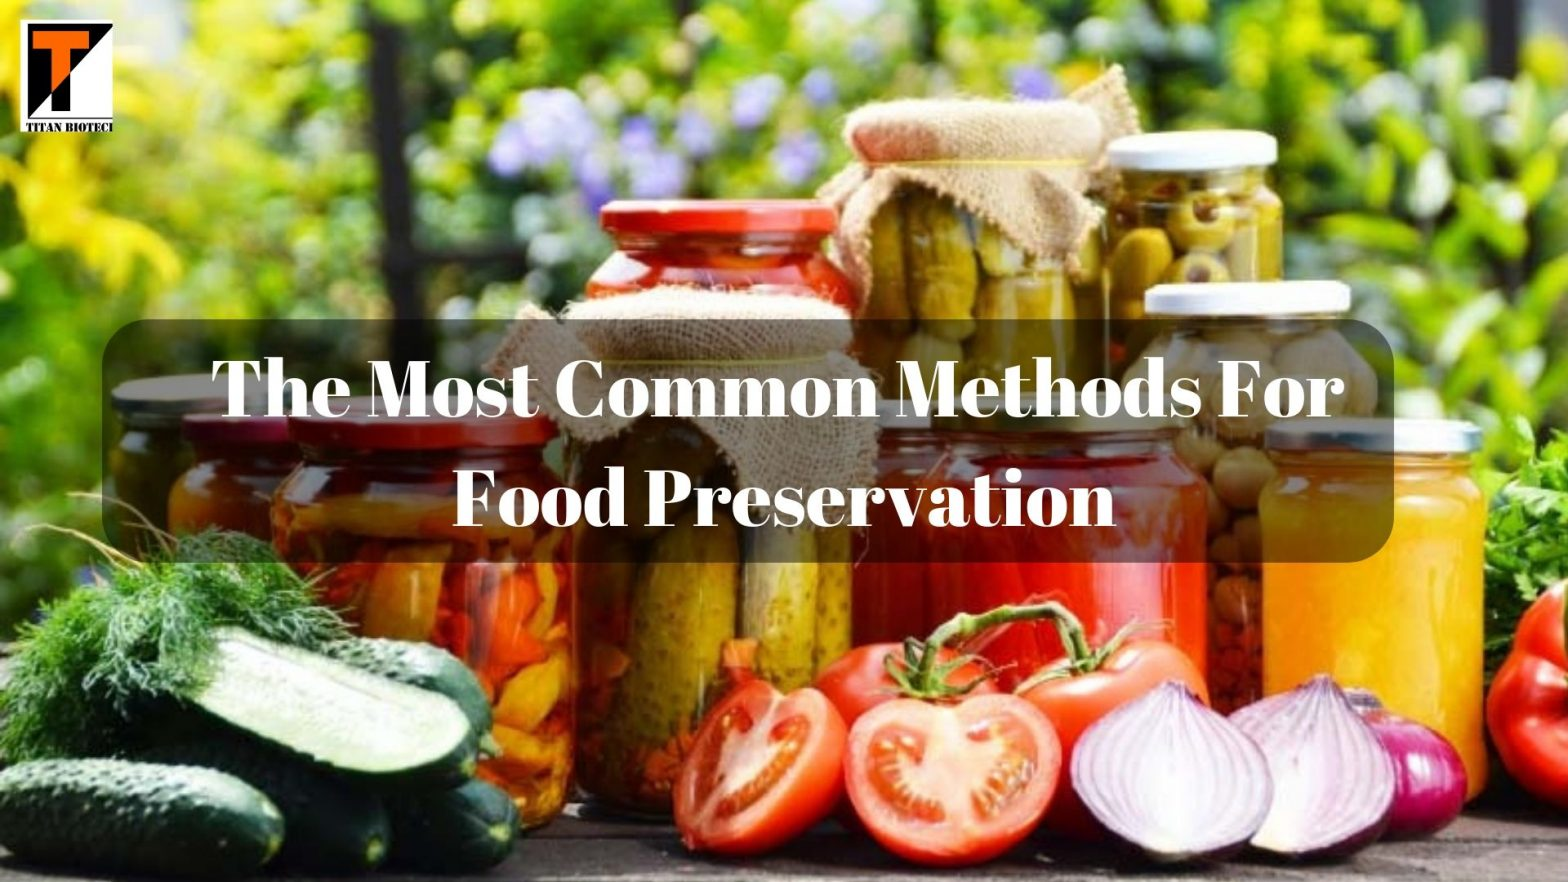 Methods For Food Preservation